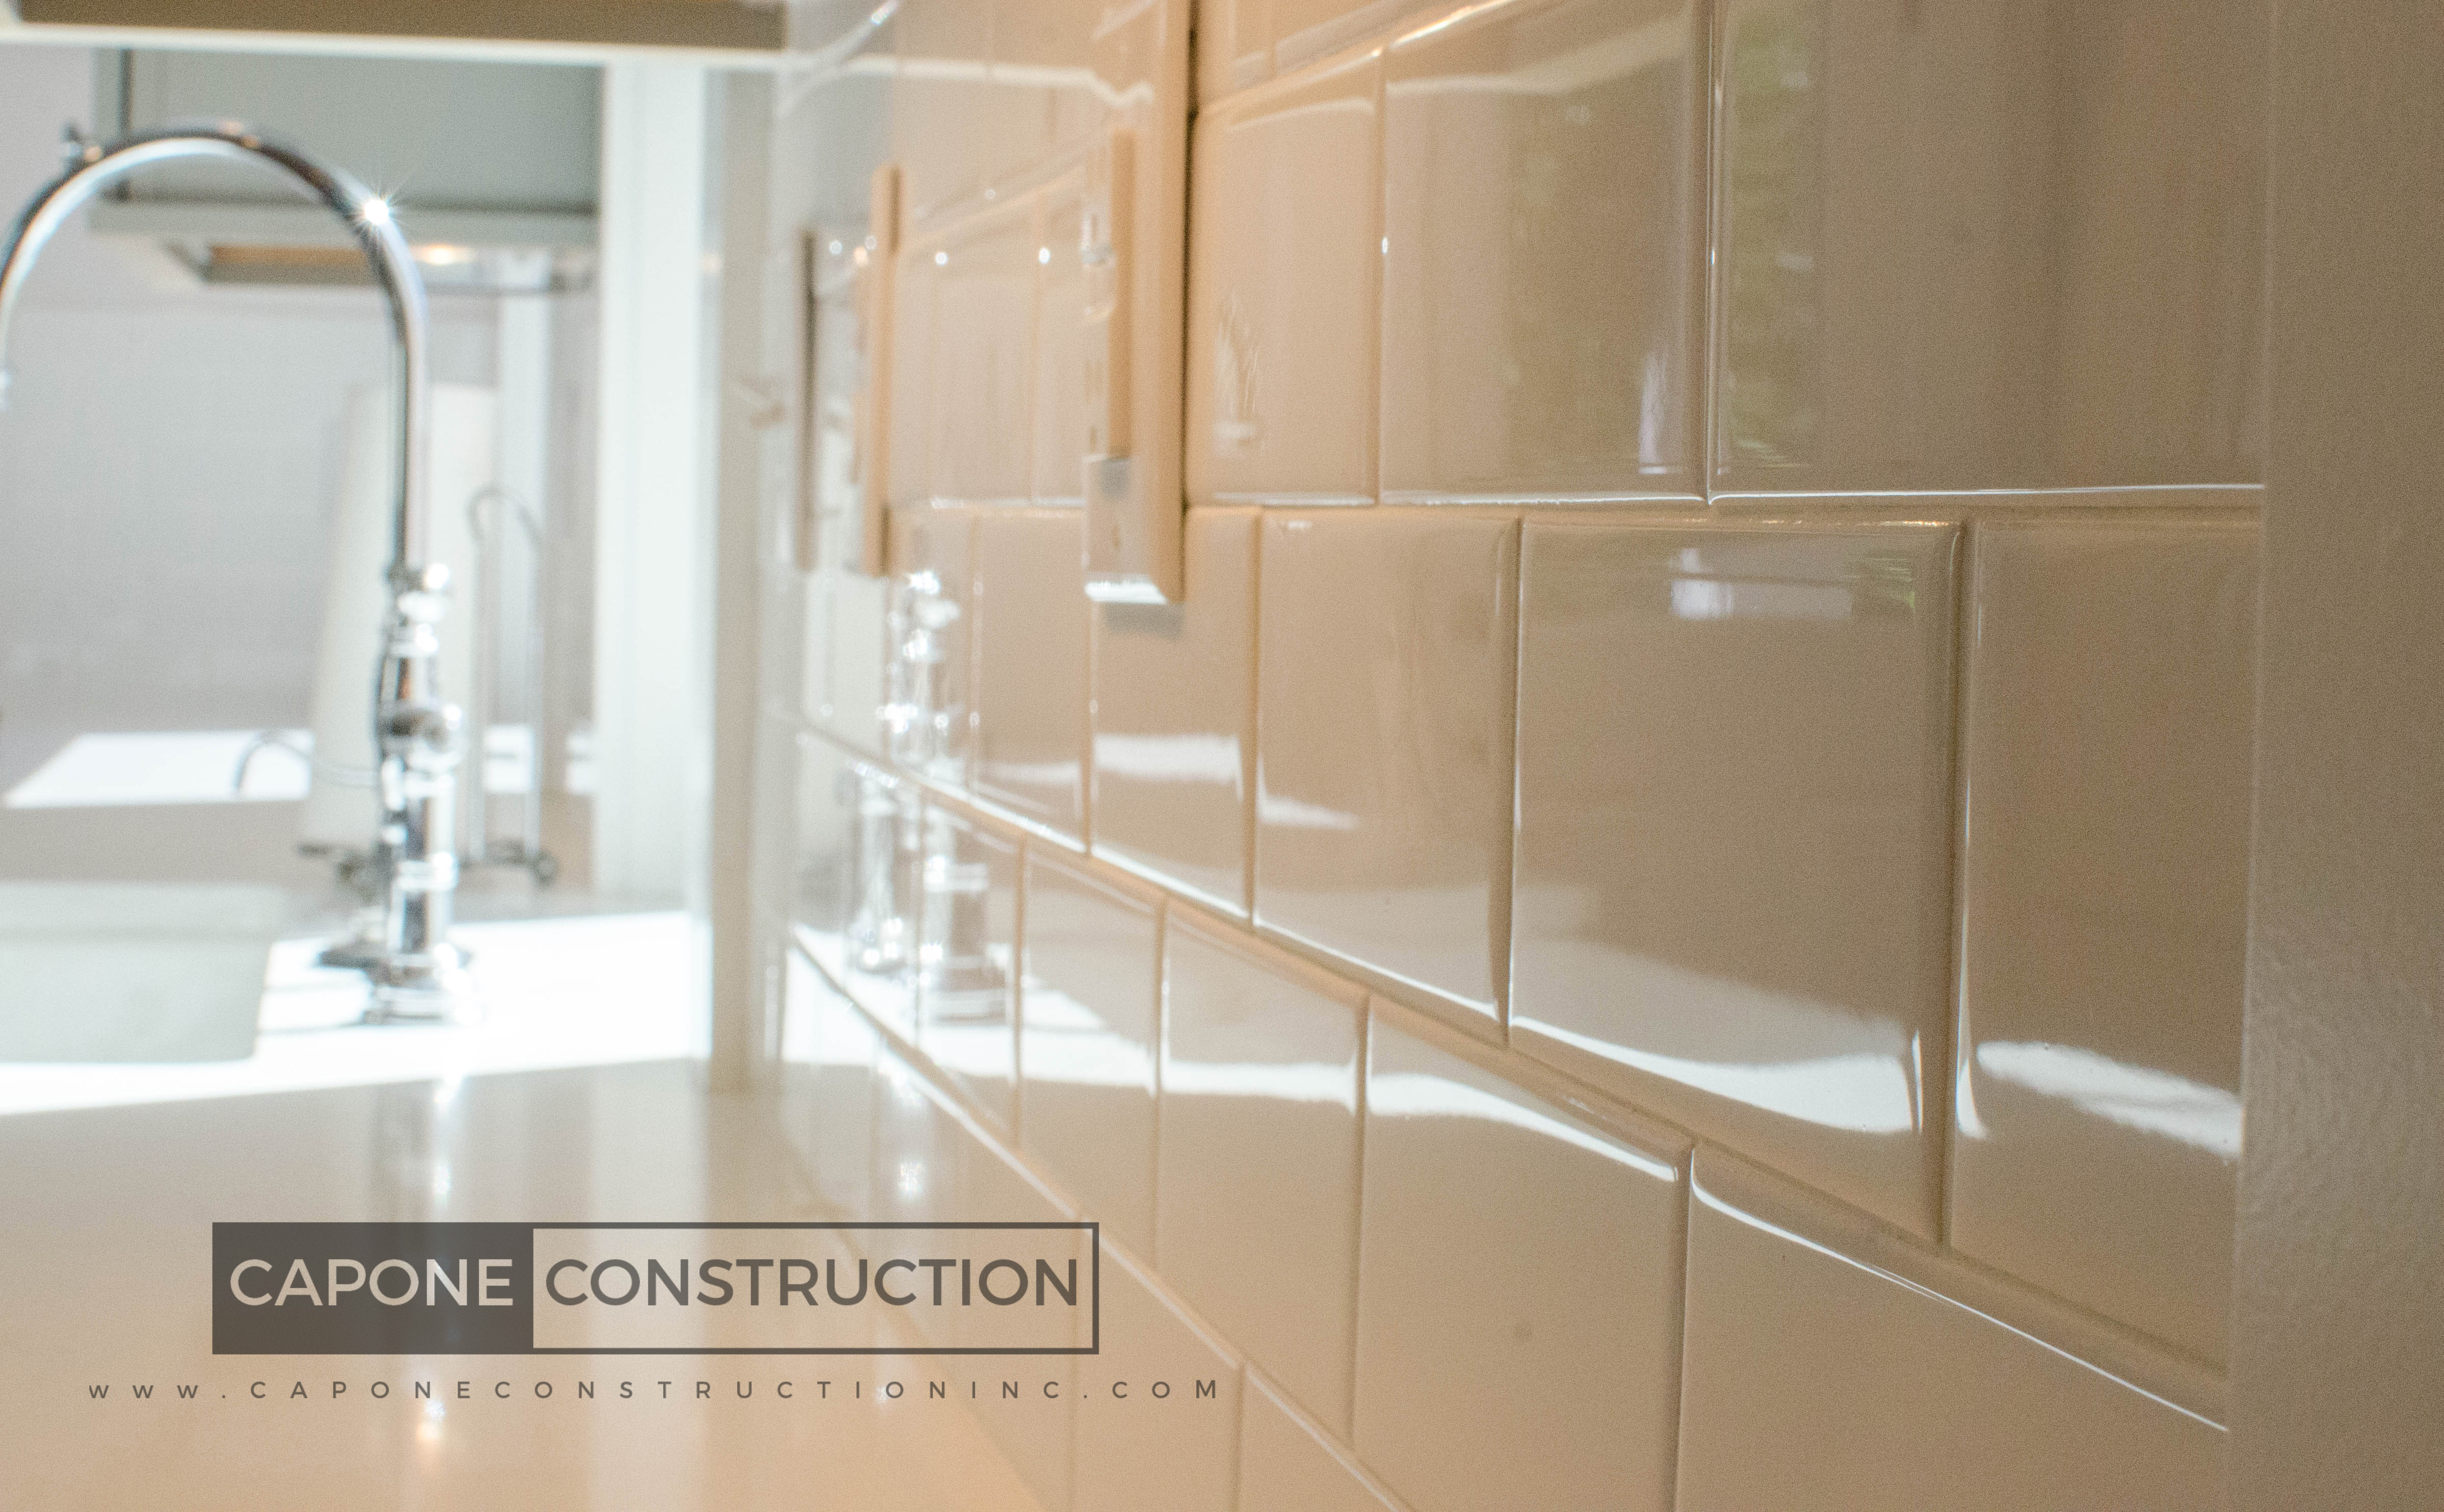 Tile Selected from Design Materials